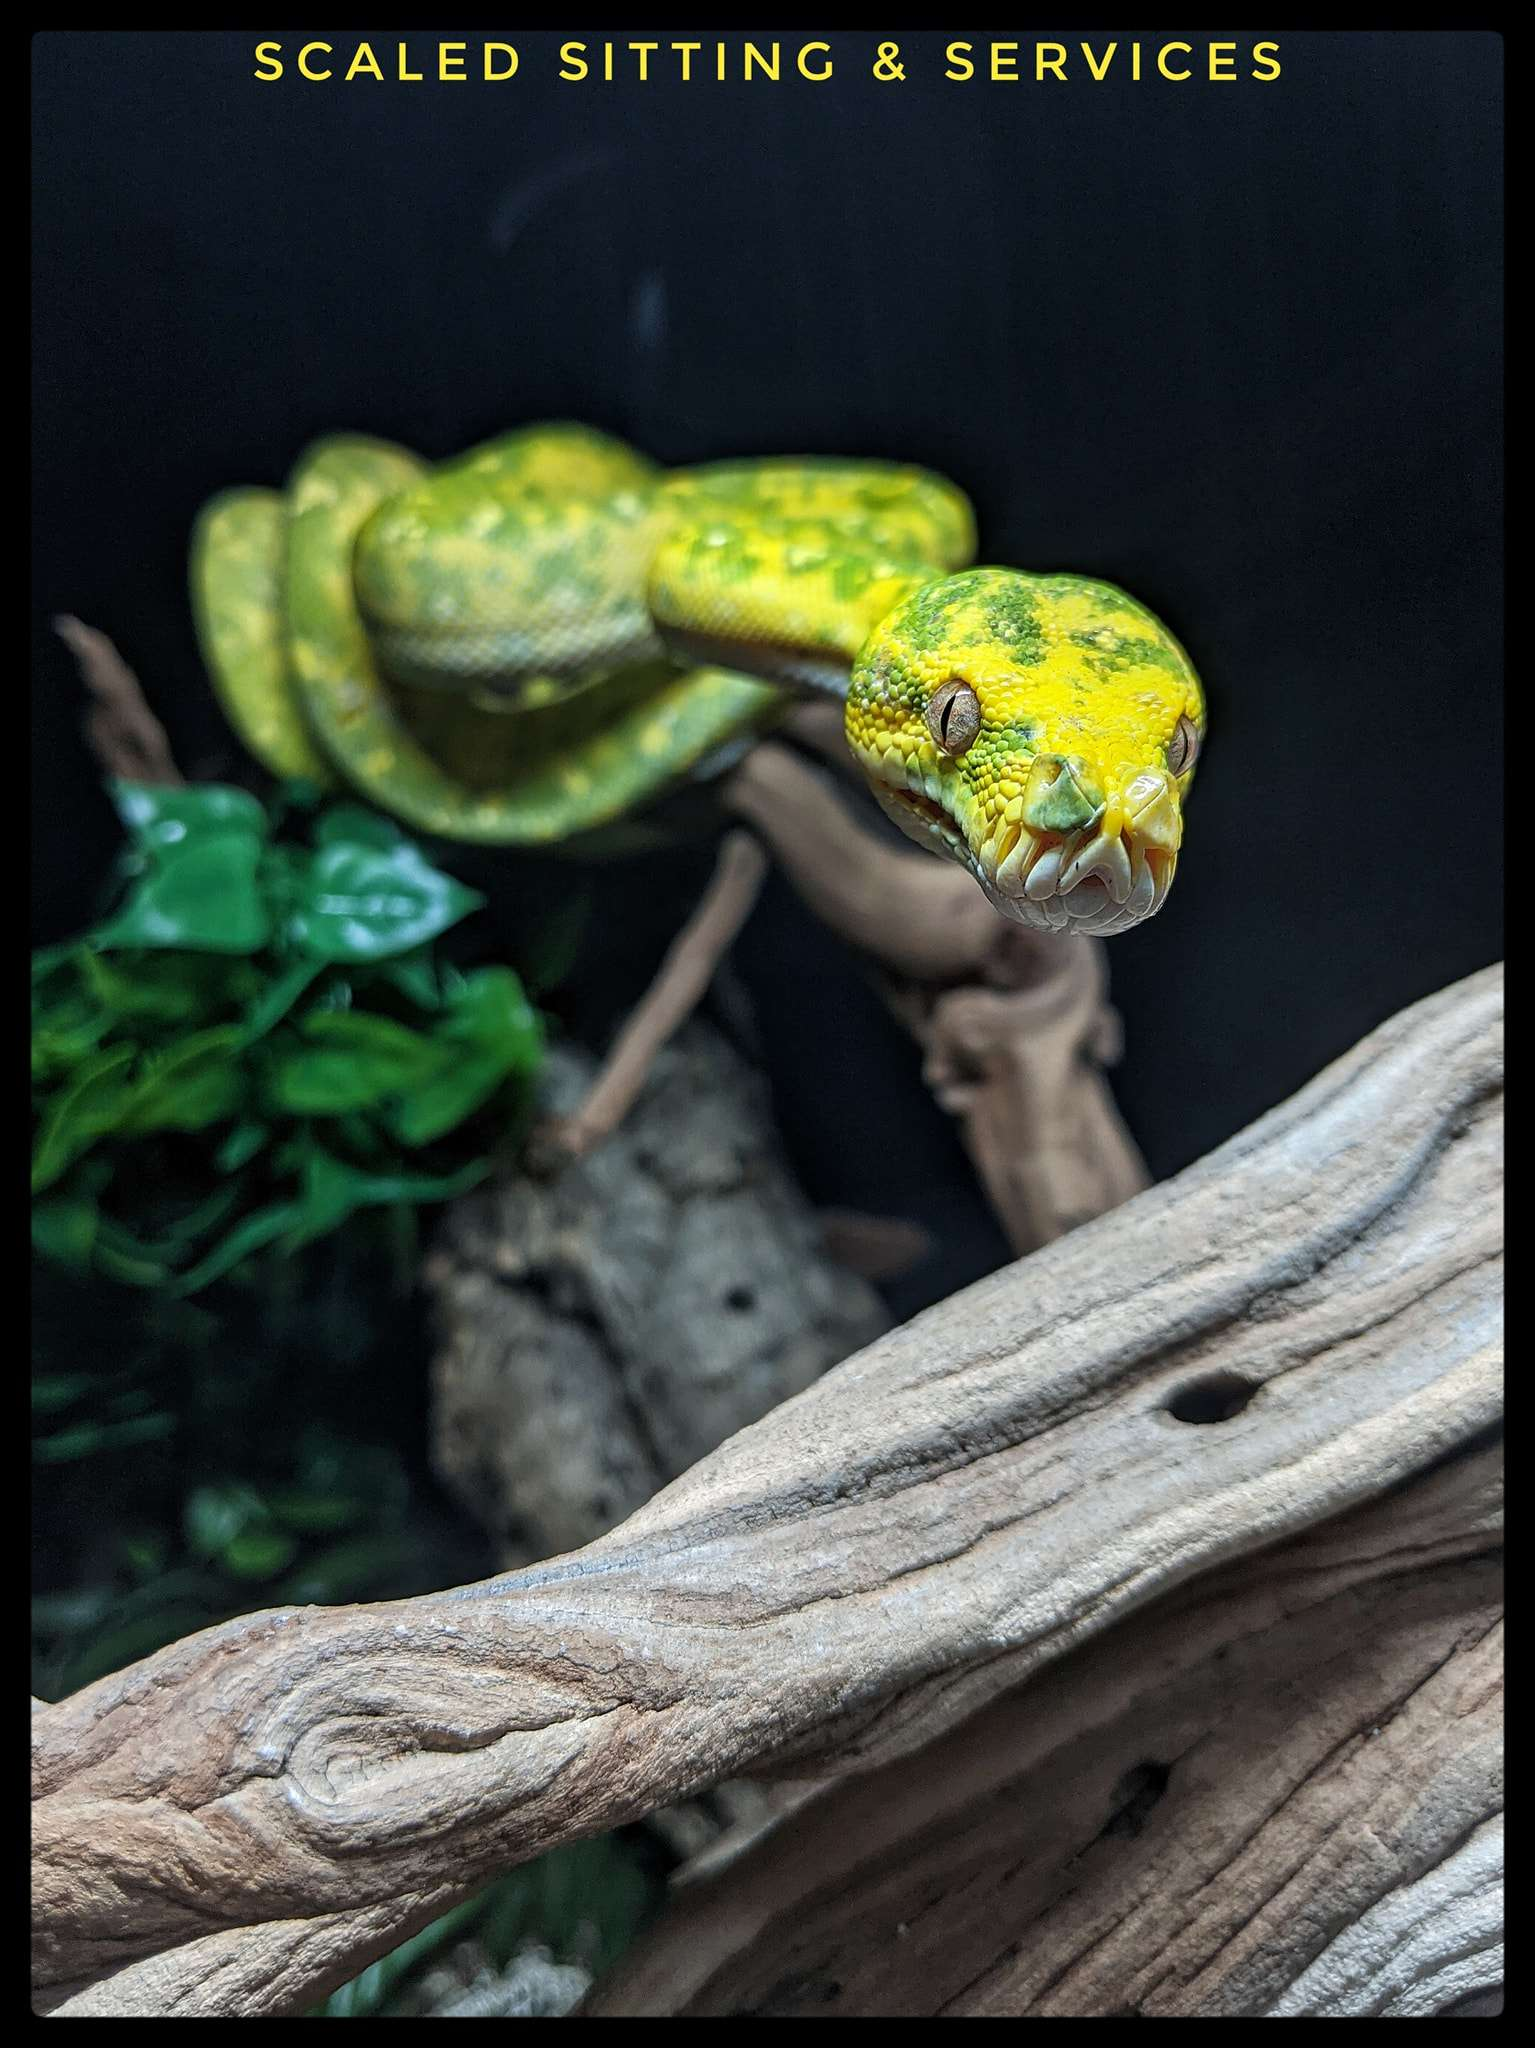 green tree python with face extended outwards towards camera, black background